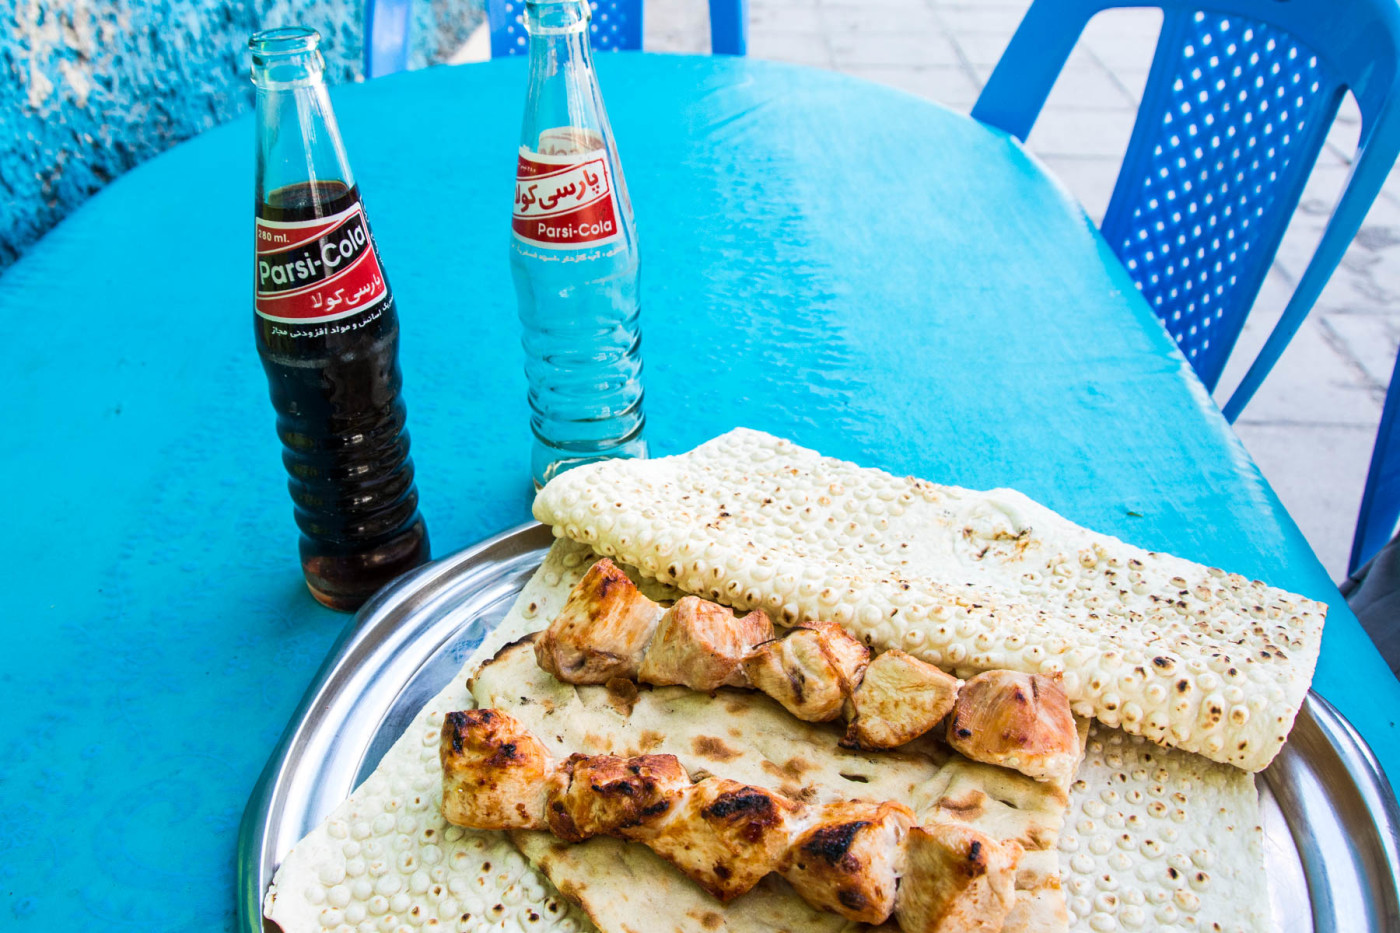 Be prepared to OD on kebabs while in Iran, possibly involuntarily.